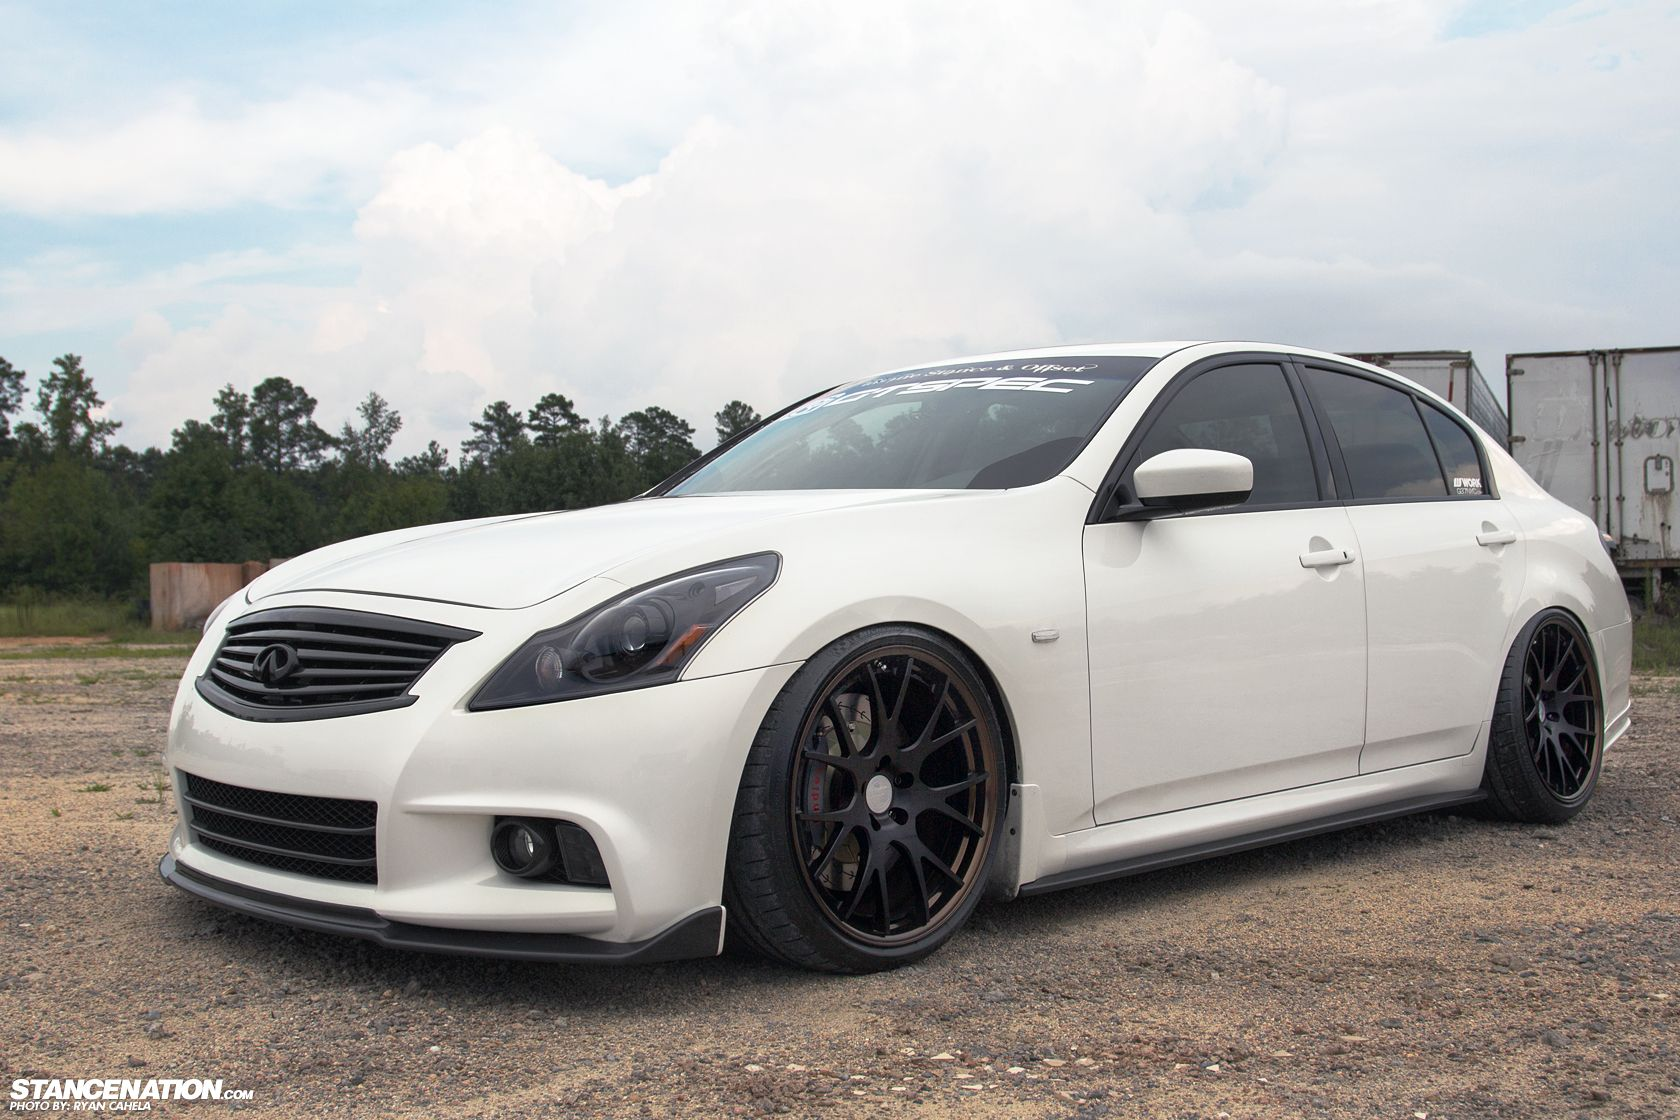 infiniti g37 white with black rims. meet layla christopheru0027s 600hp infiniti g37 sedan stancenation white with black rims